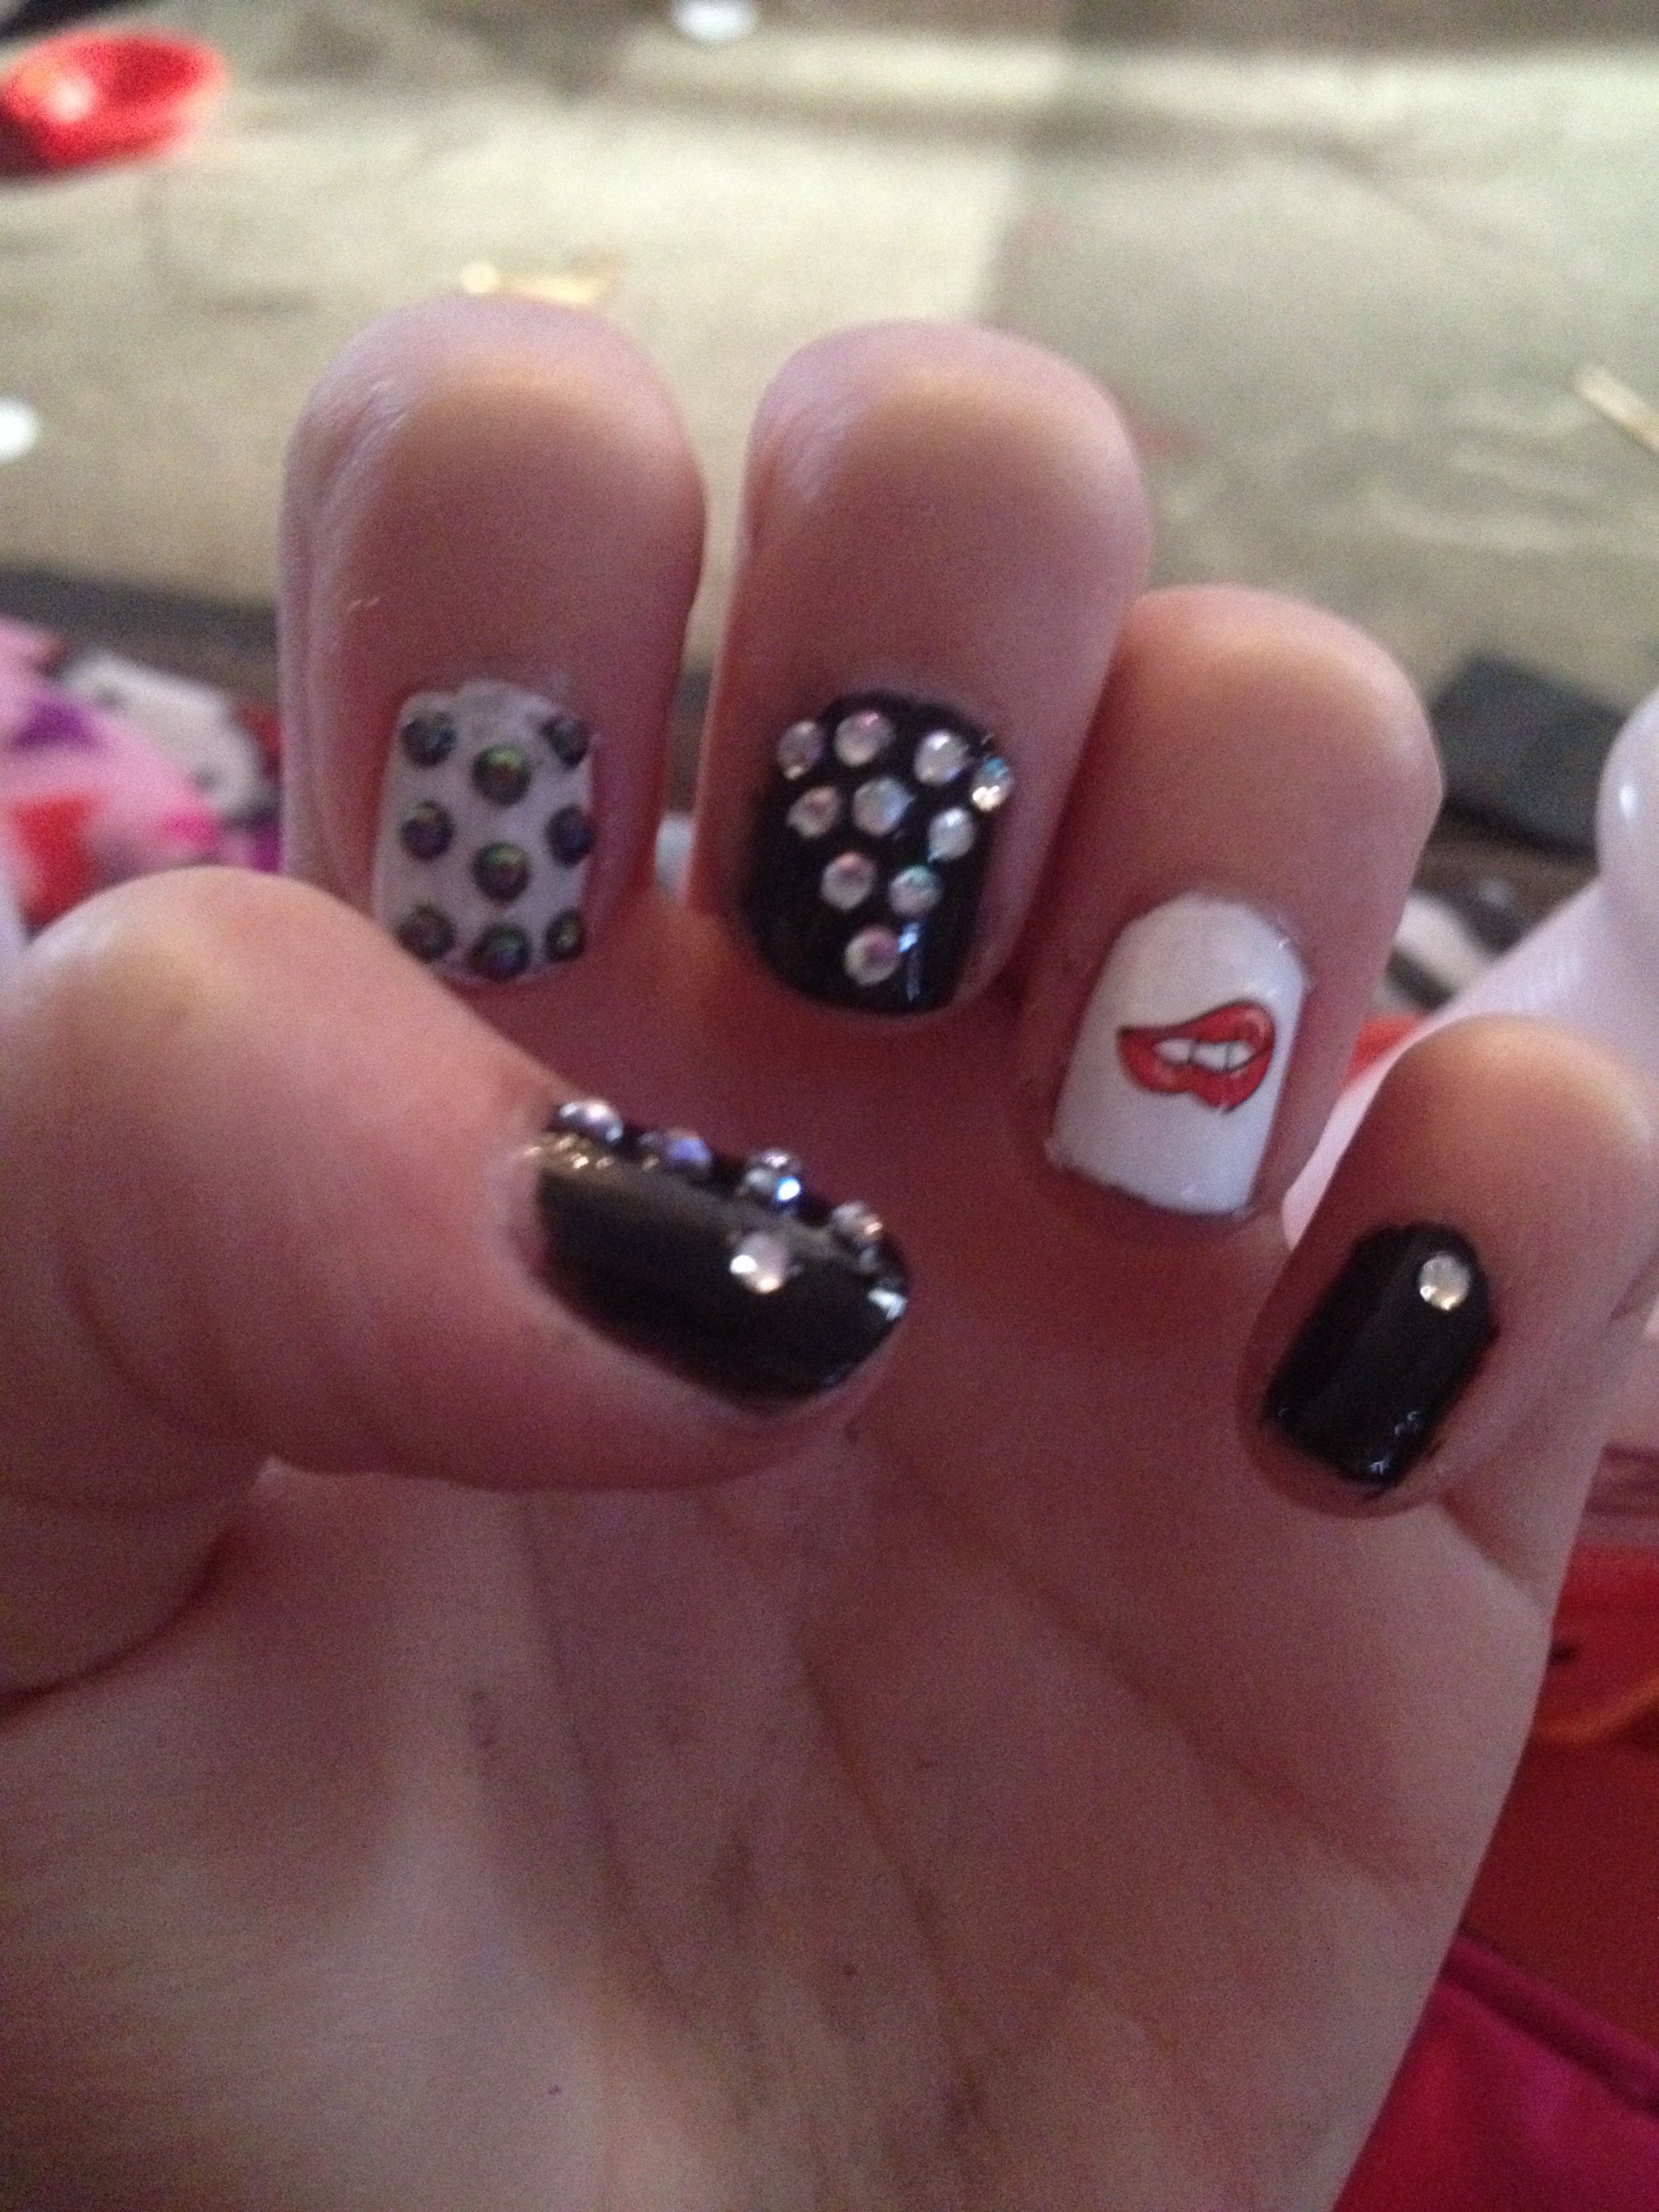 Cute lips and diamond nails